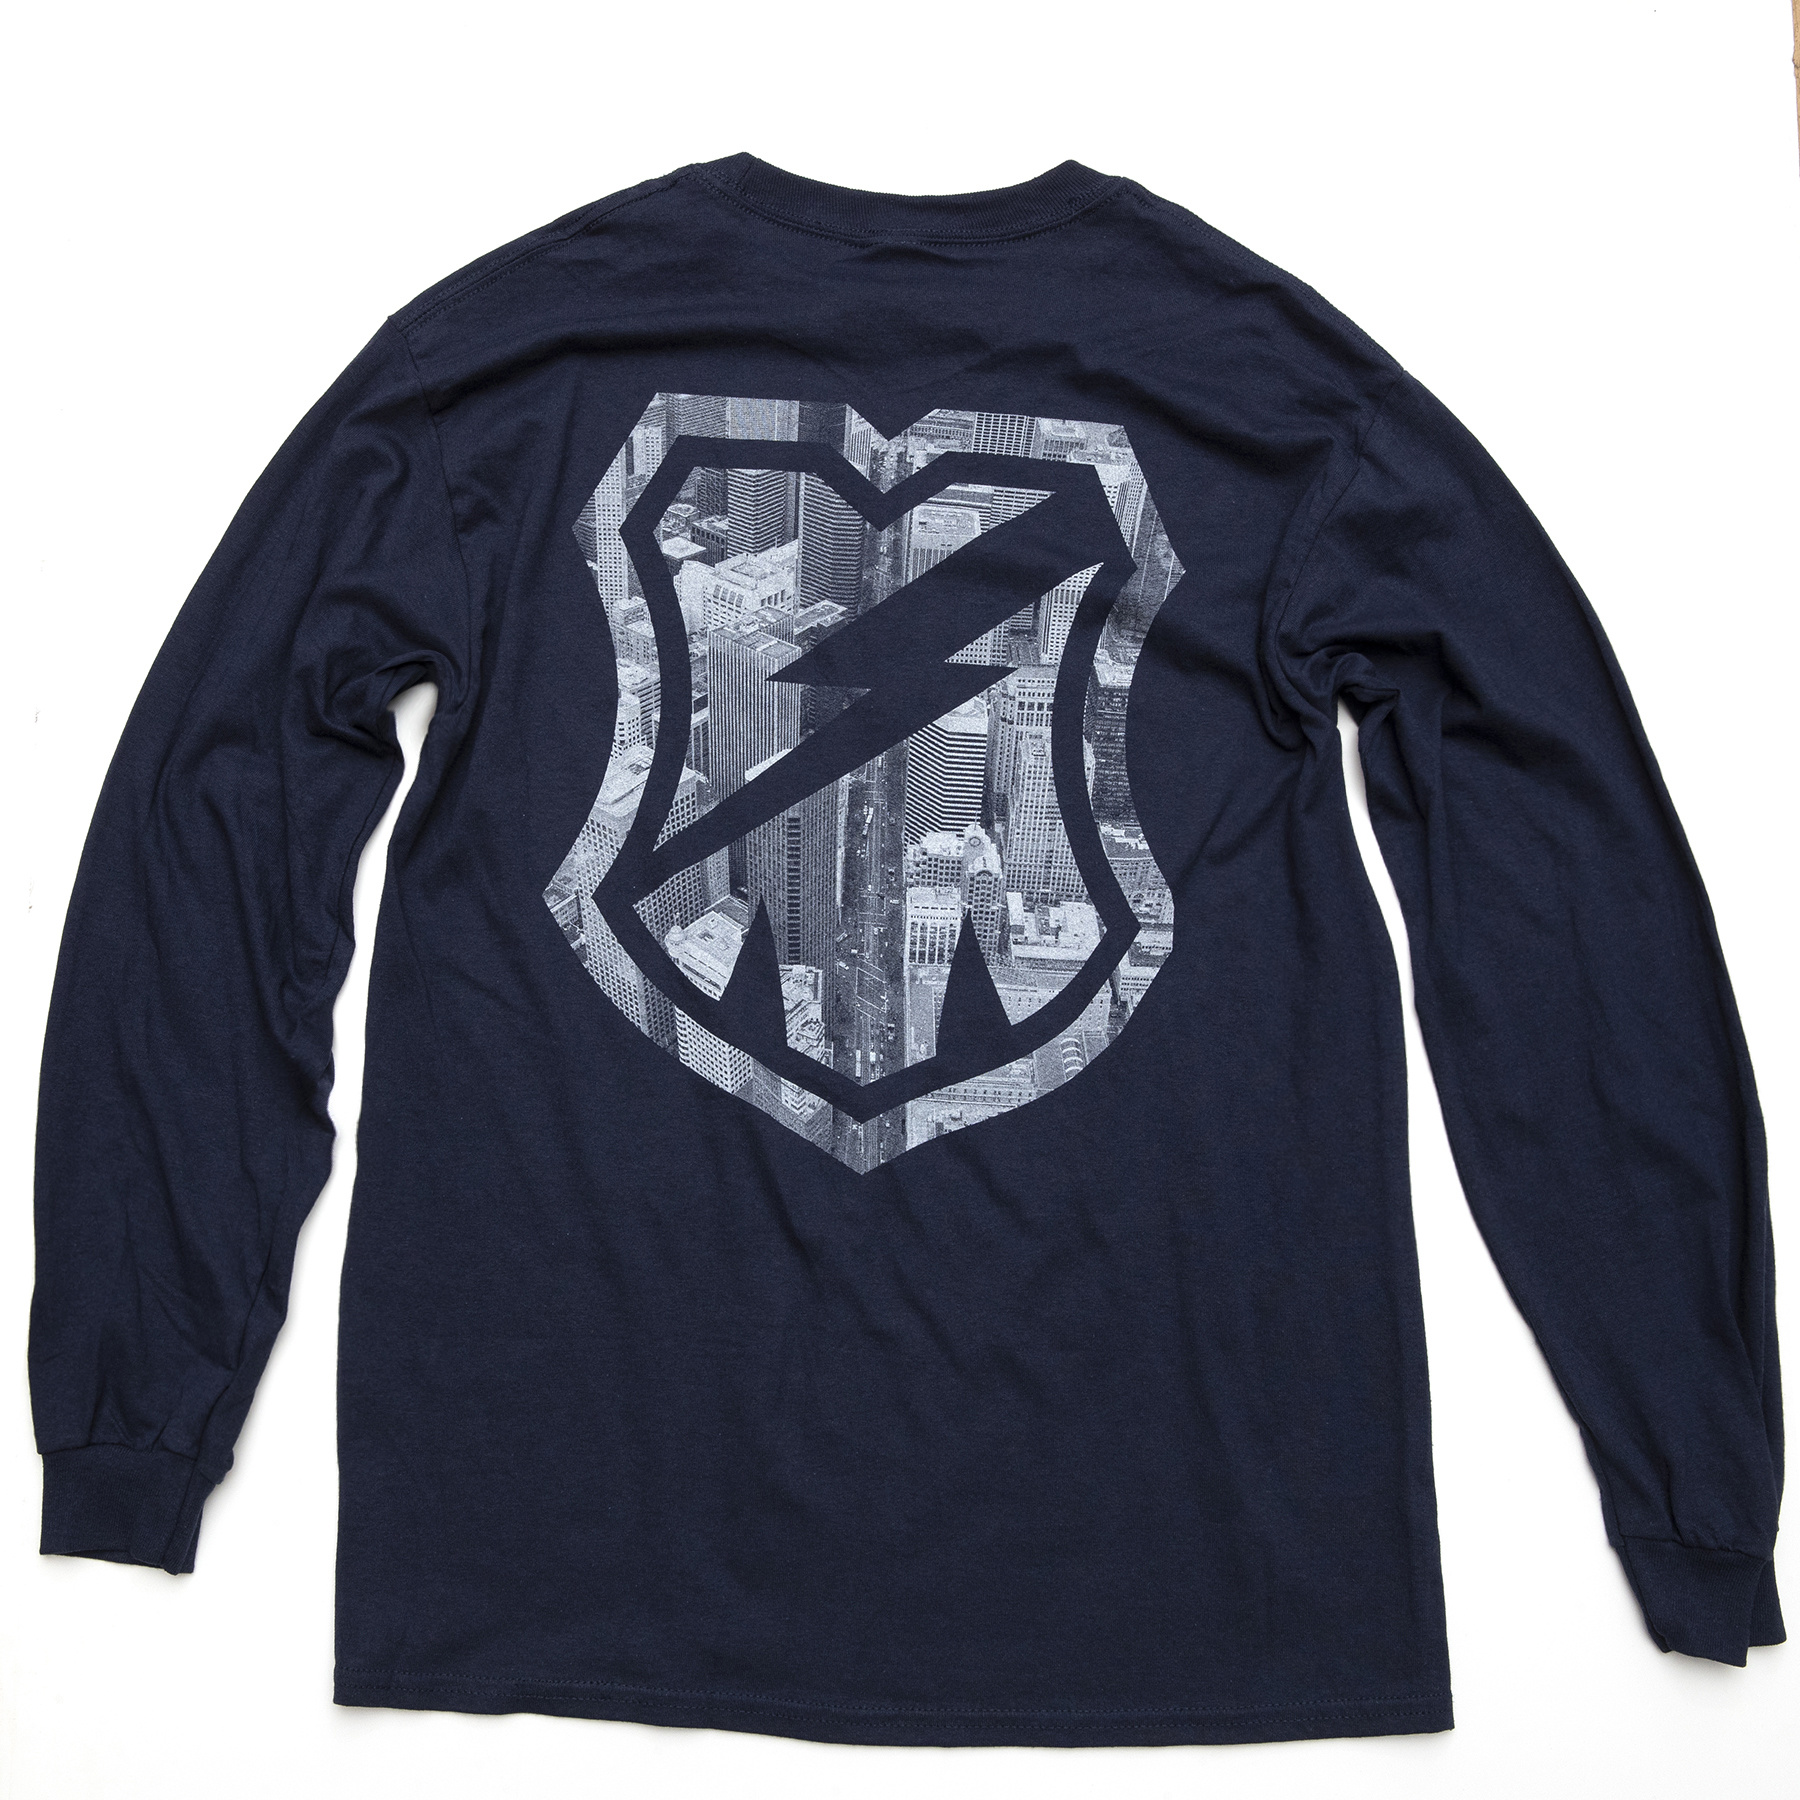 MASH Death Cities Long Sleeve Shirt Two Colors